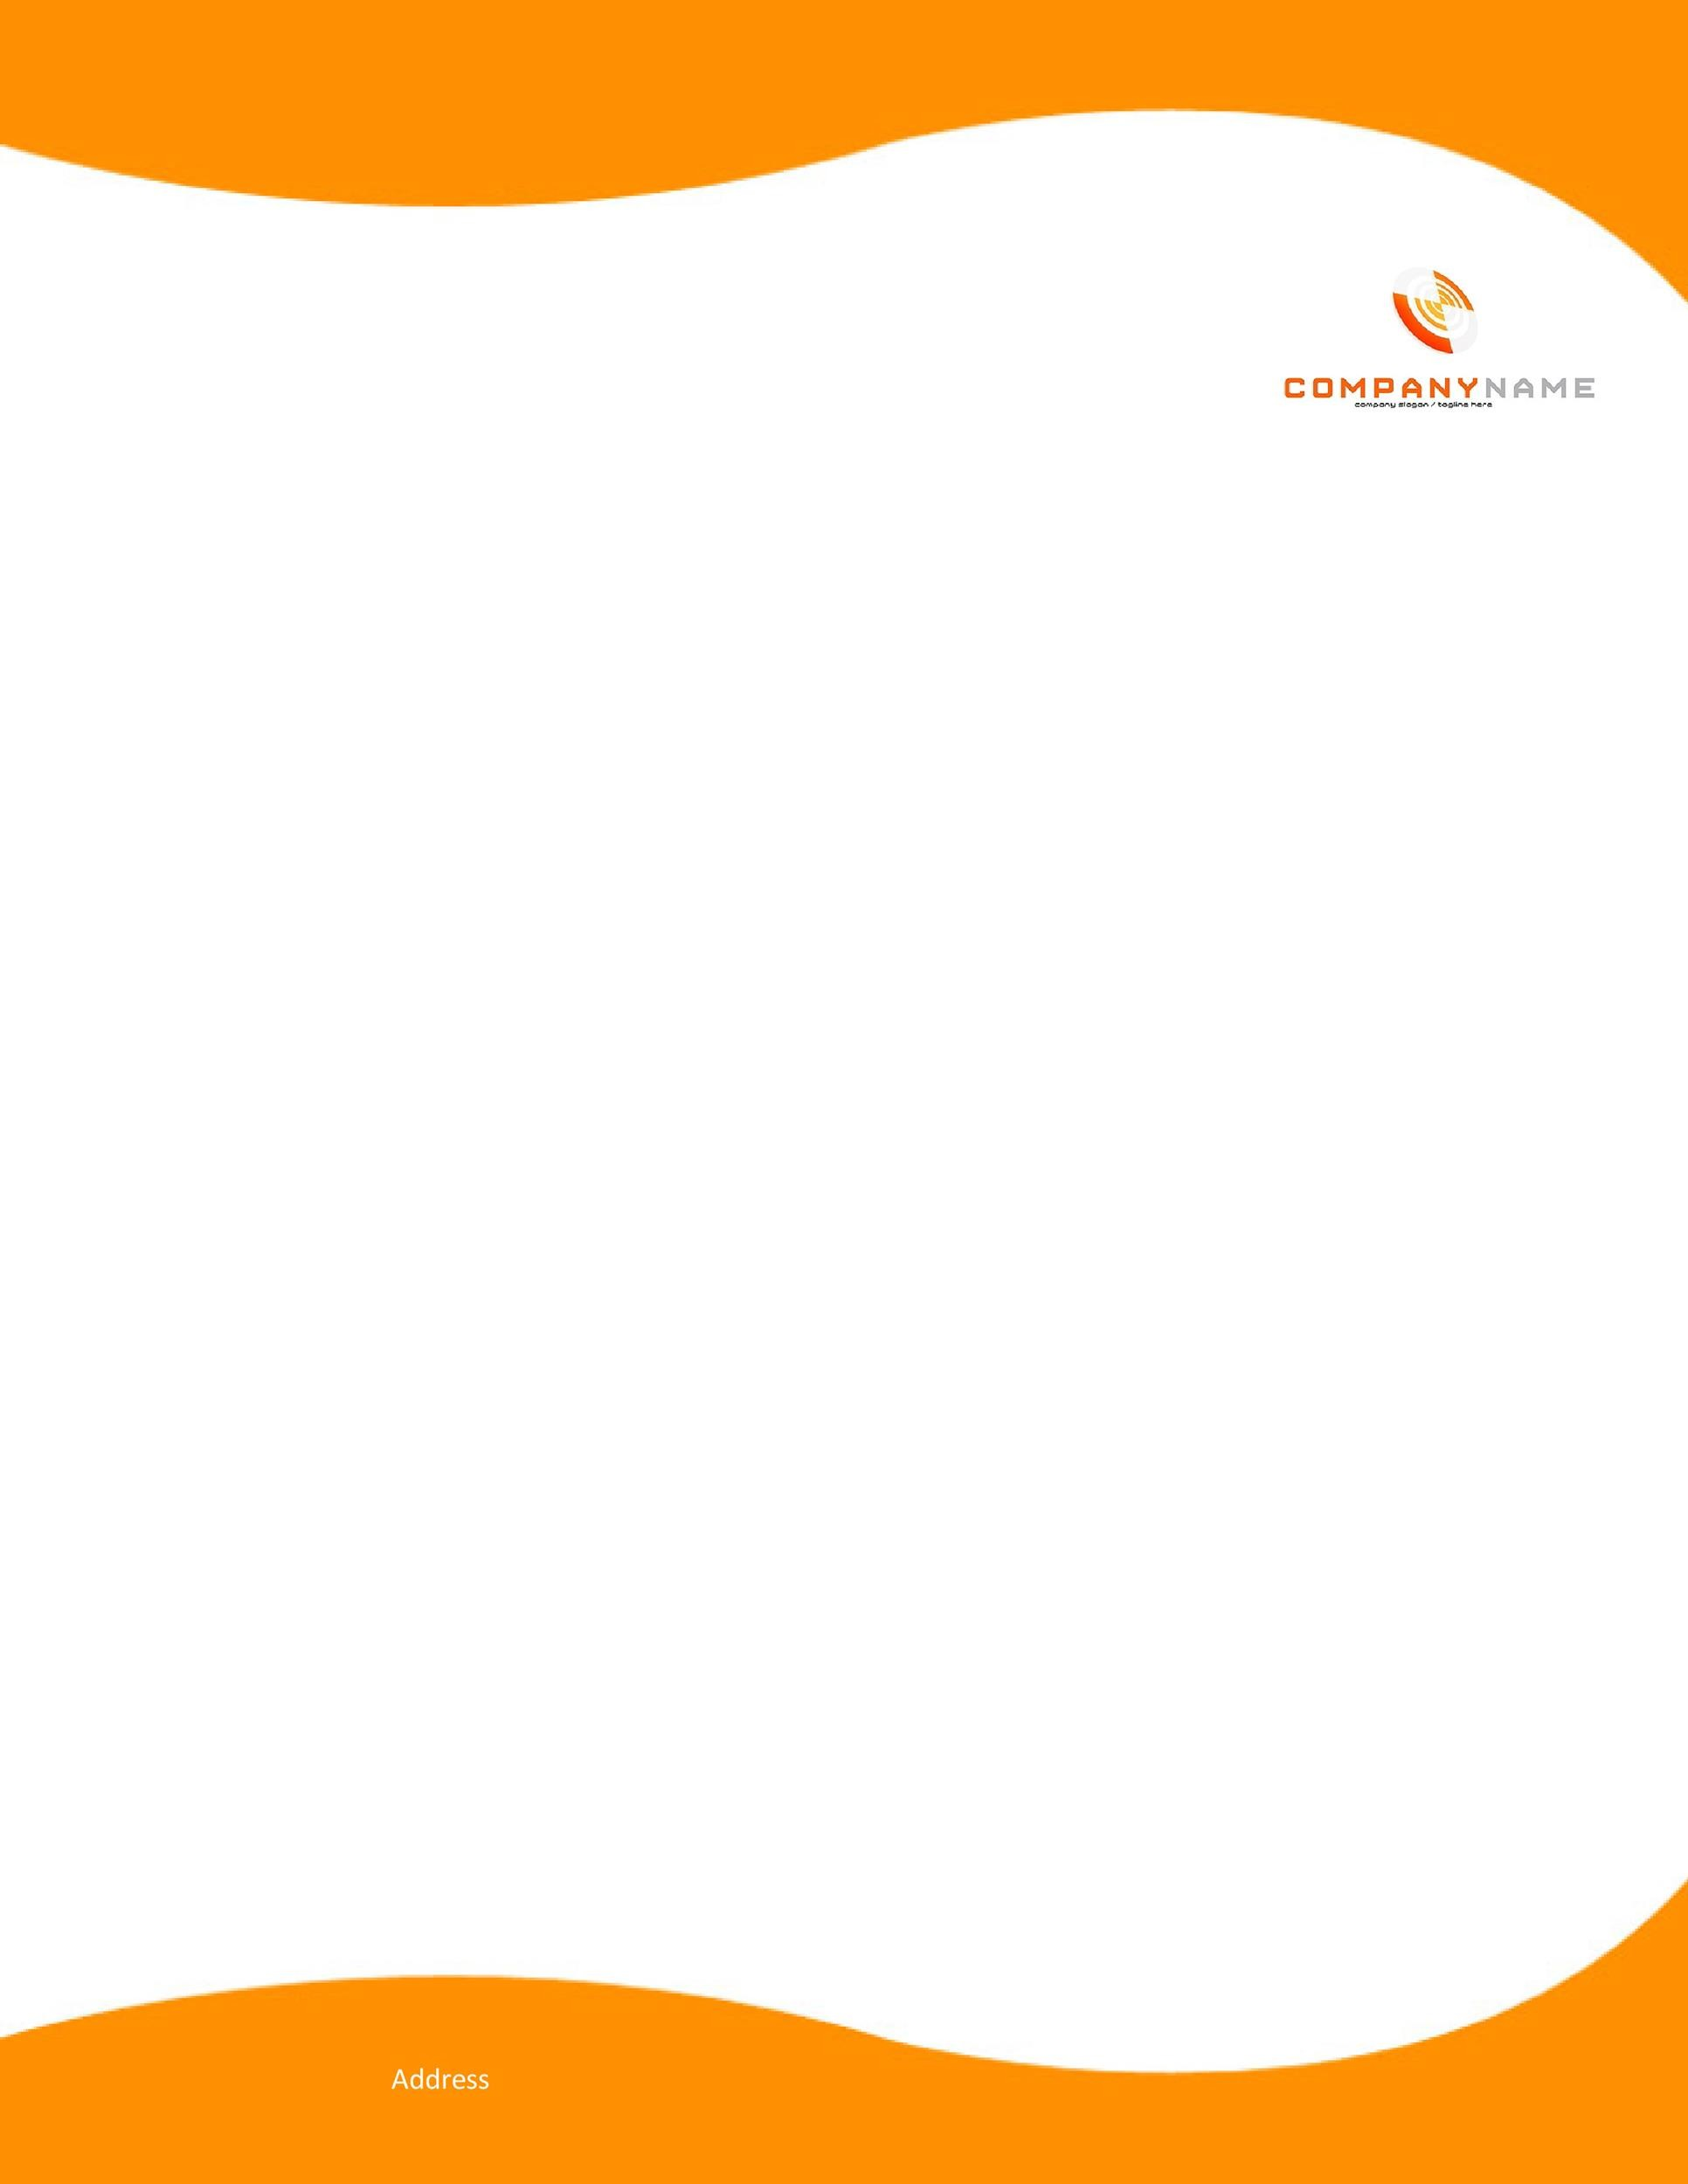 Printable Letterhead Template Word 01